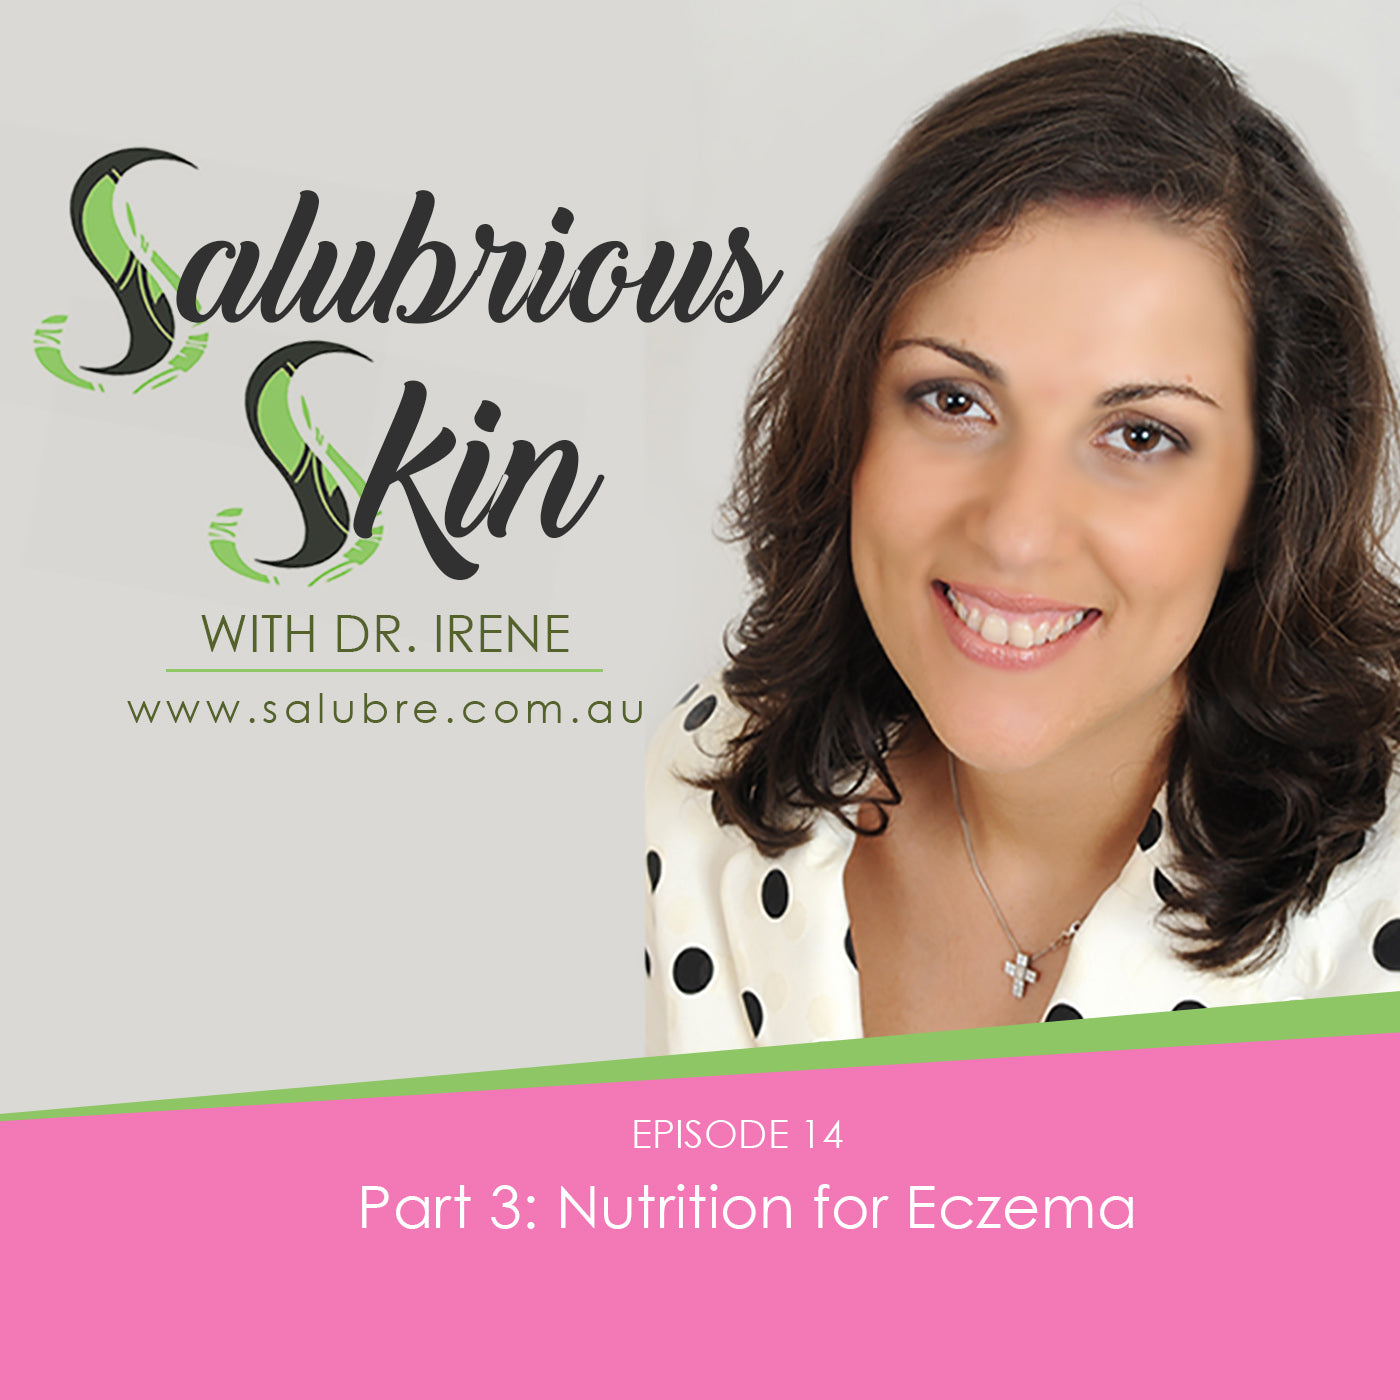 Episode 14: Part 3: Nutrition for Eczema